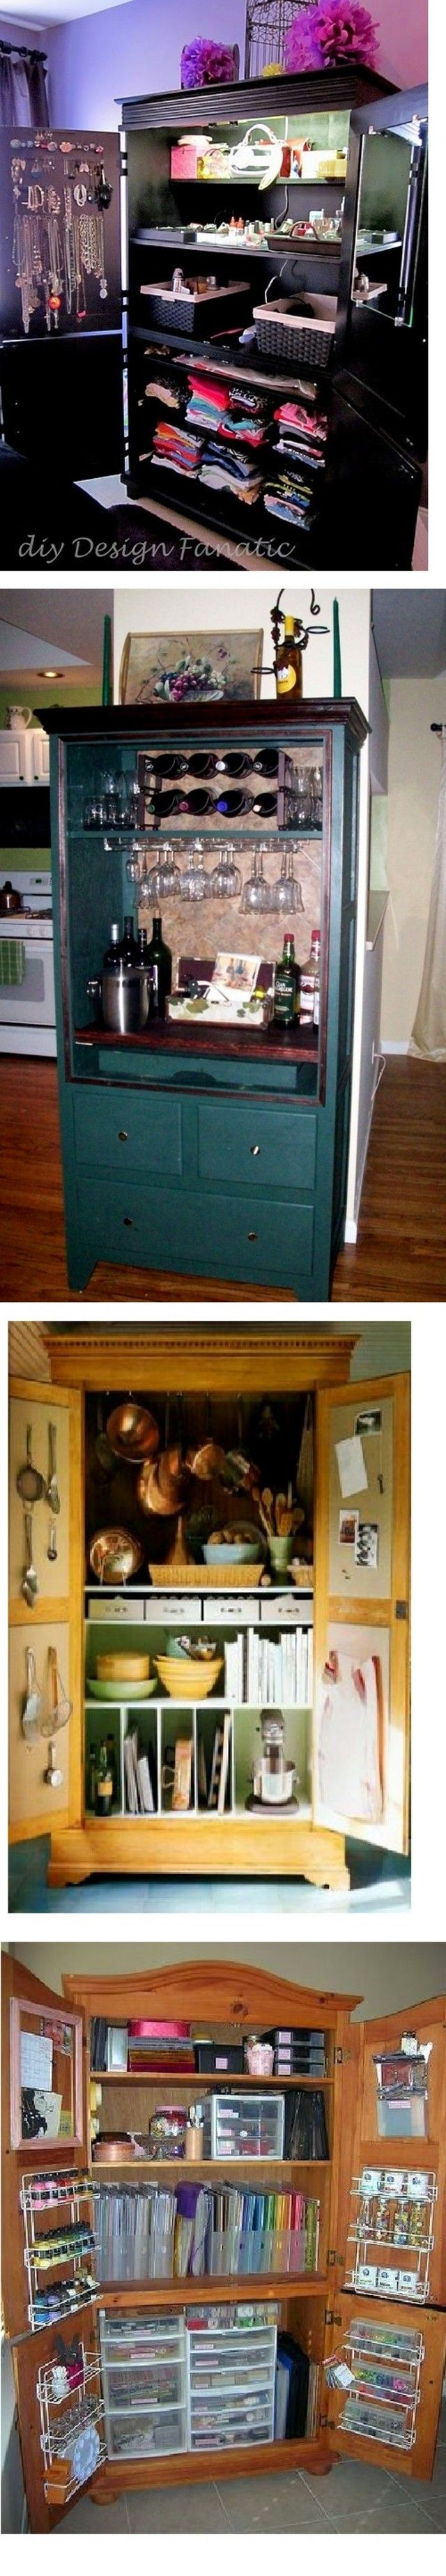 31 Best Images About Upcycle Ideas On Pinterest Decorative